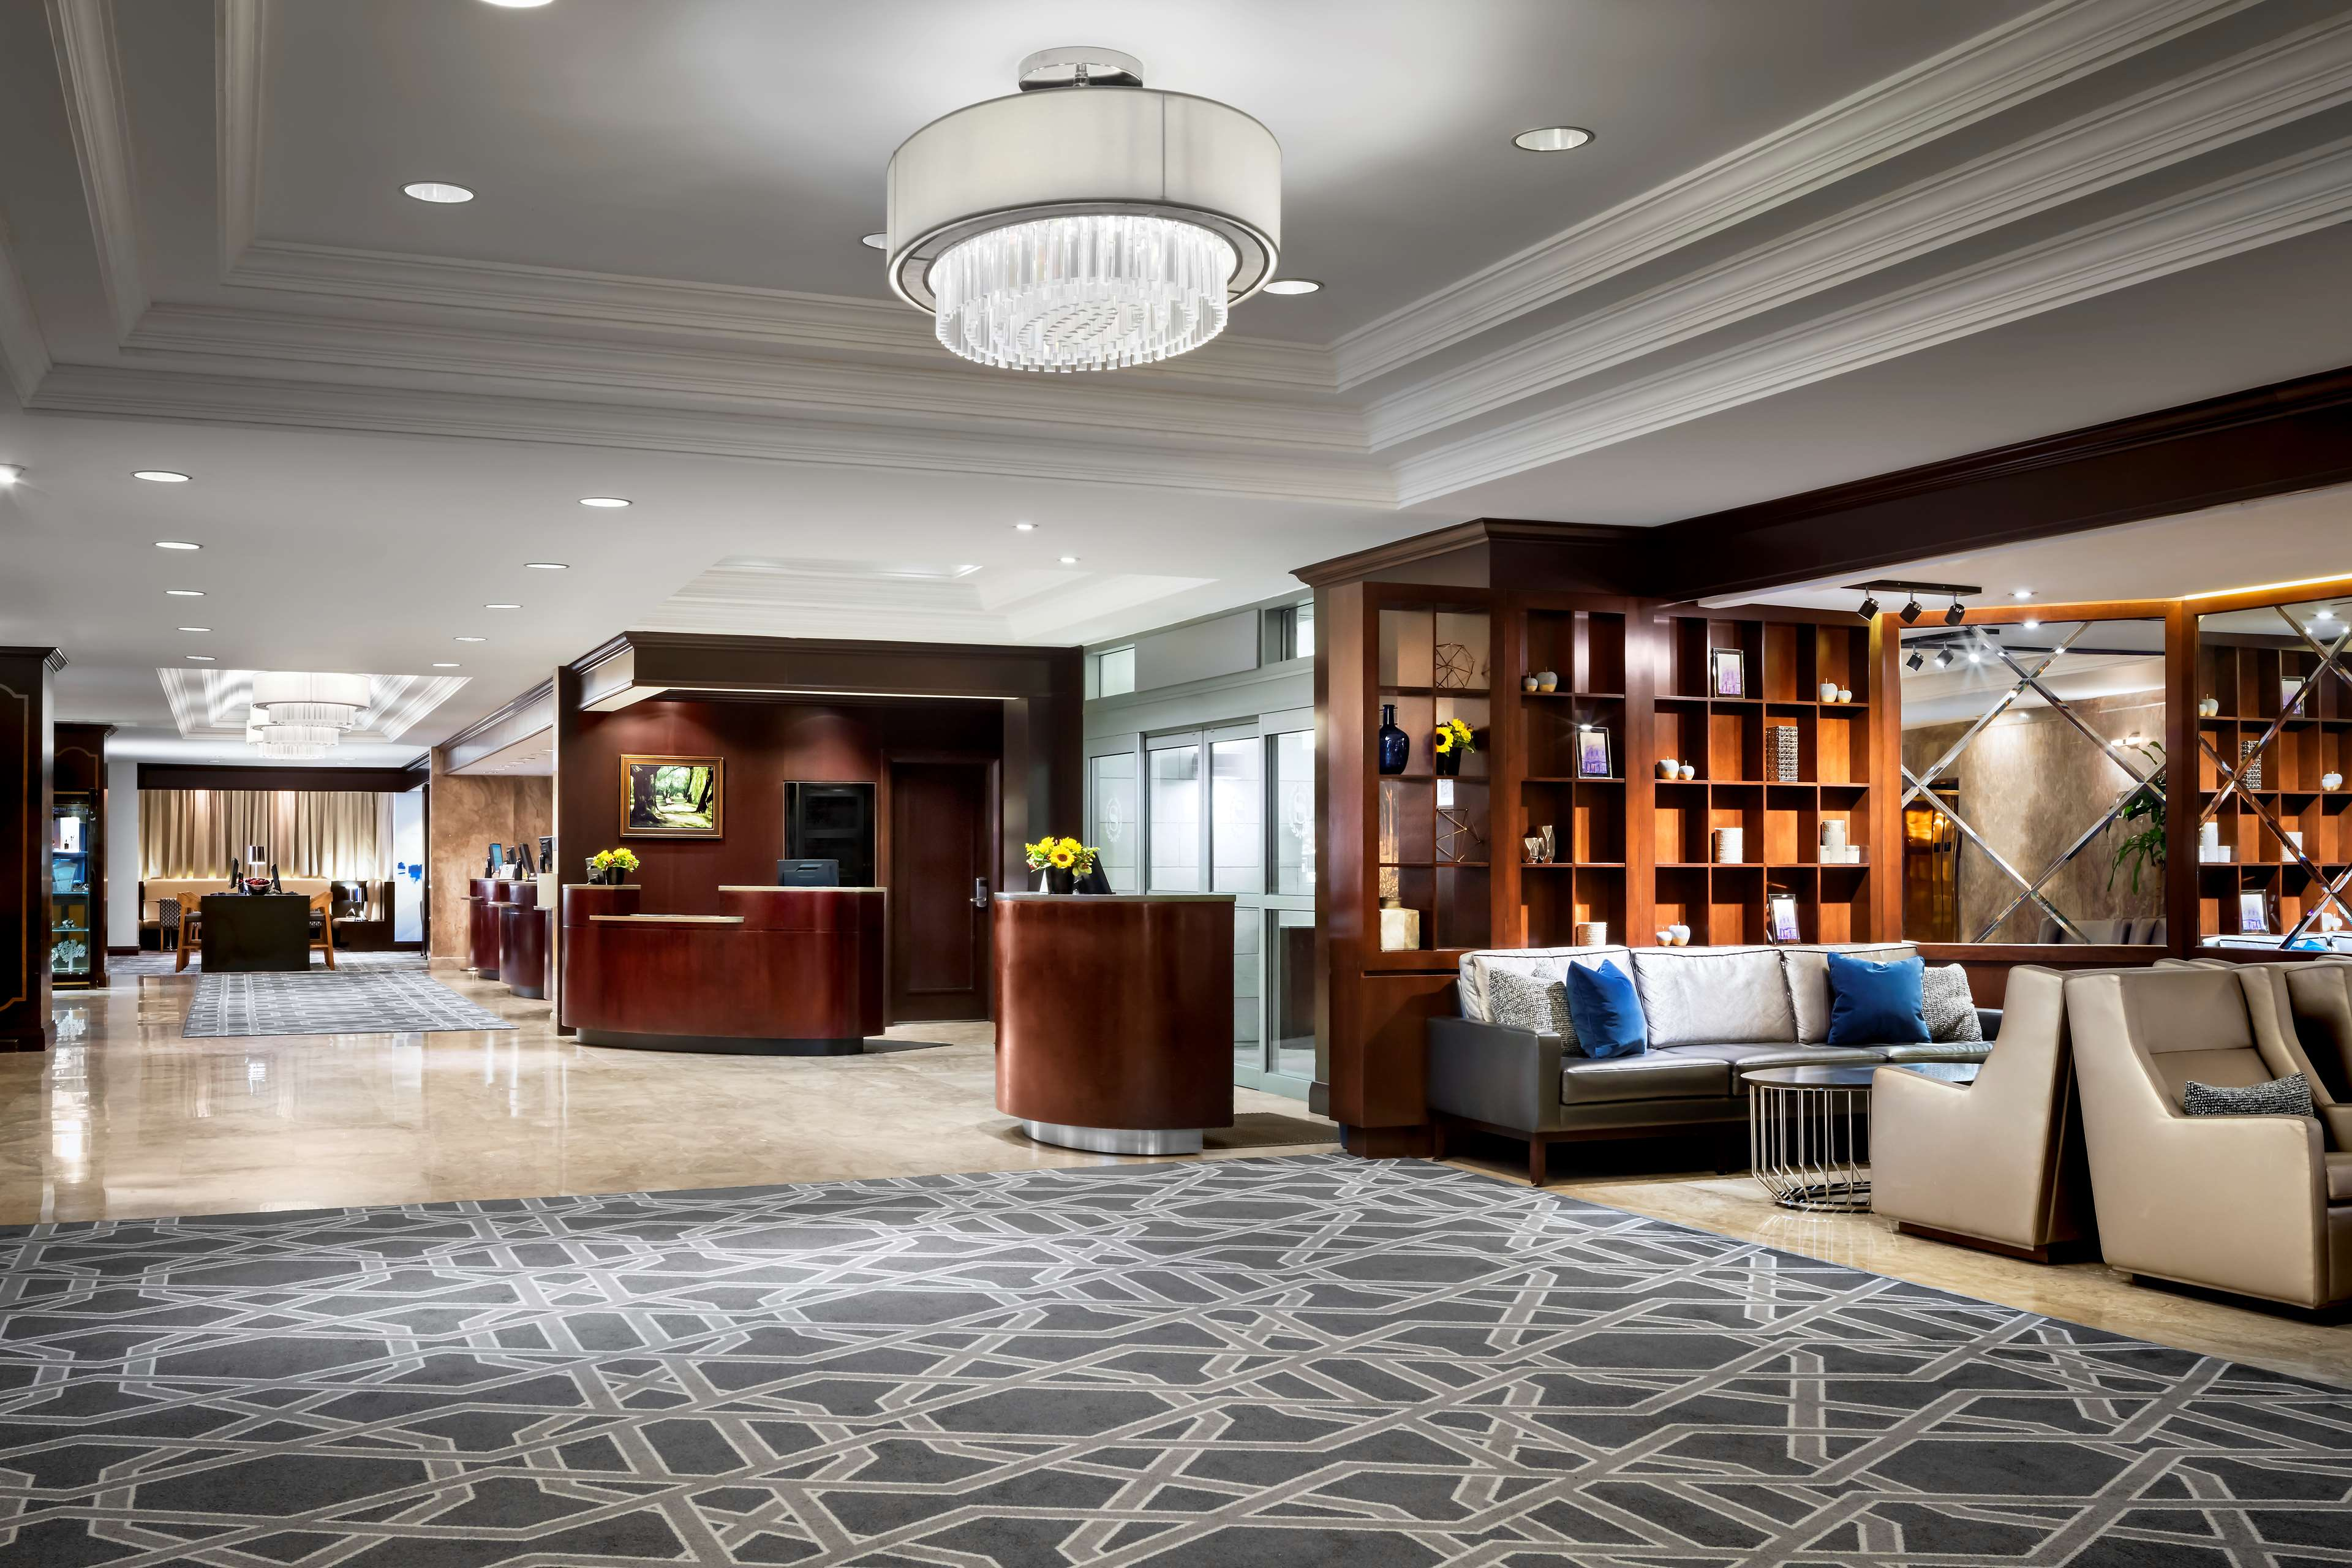 Le Centre Sheraton Montreal Hotel à Montreal: Overall Lobby View